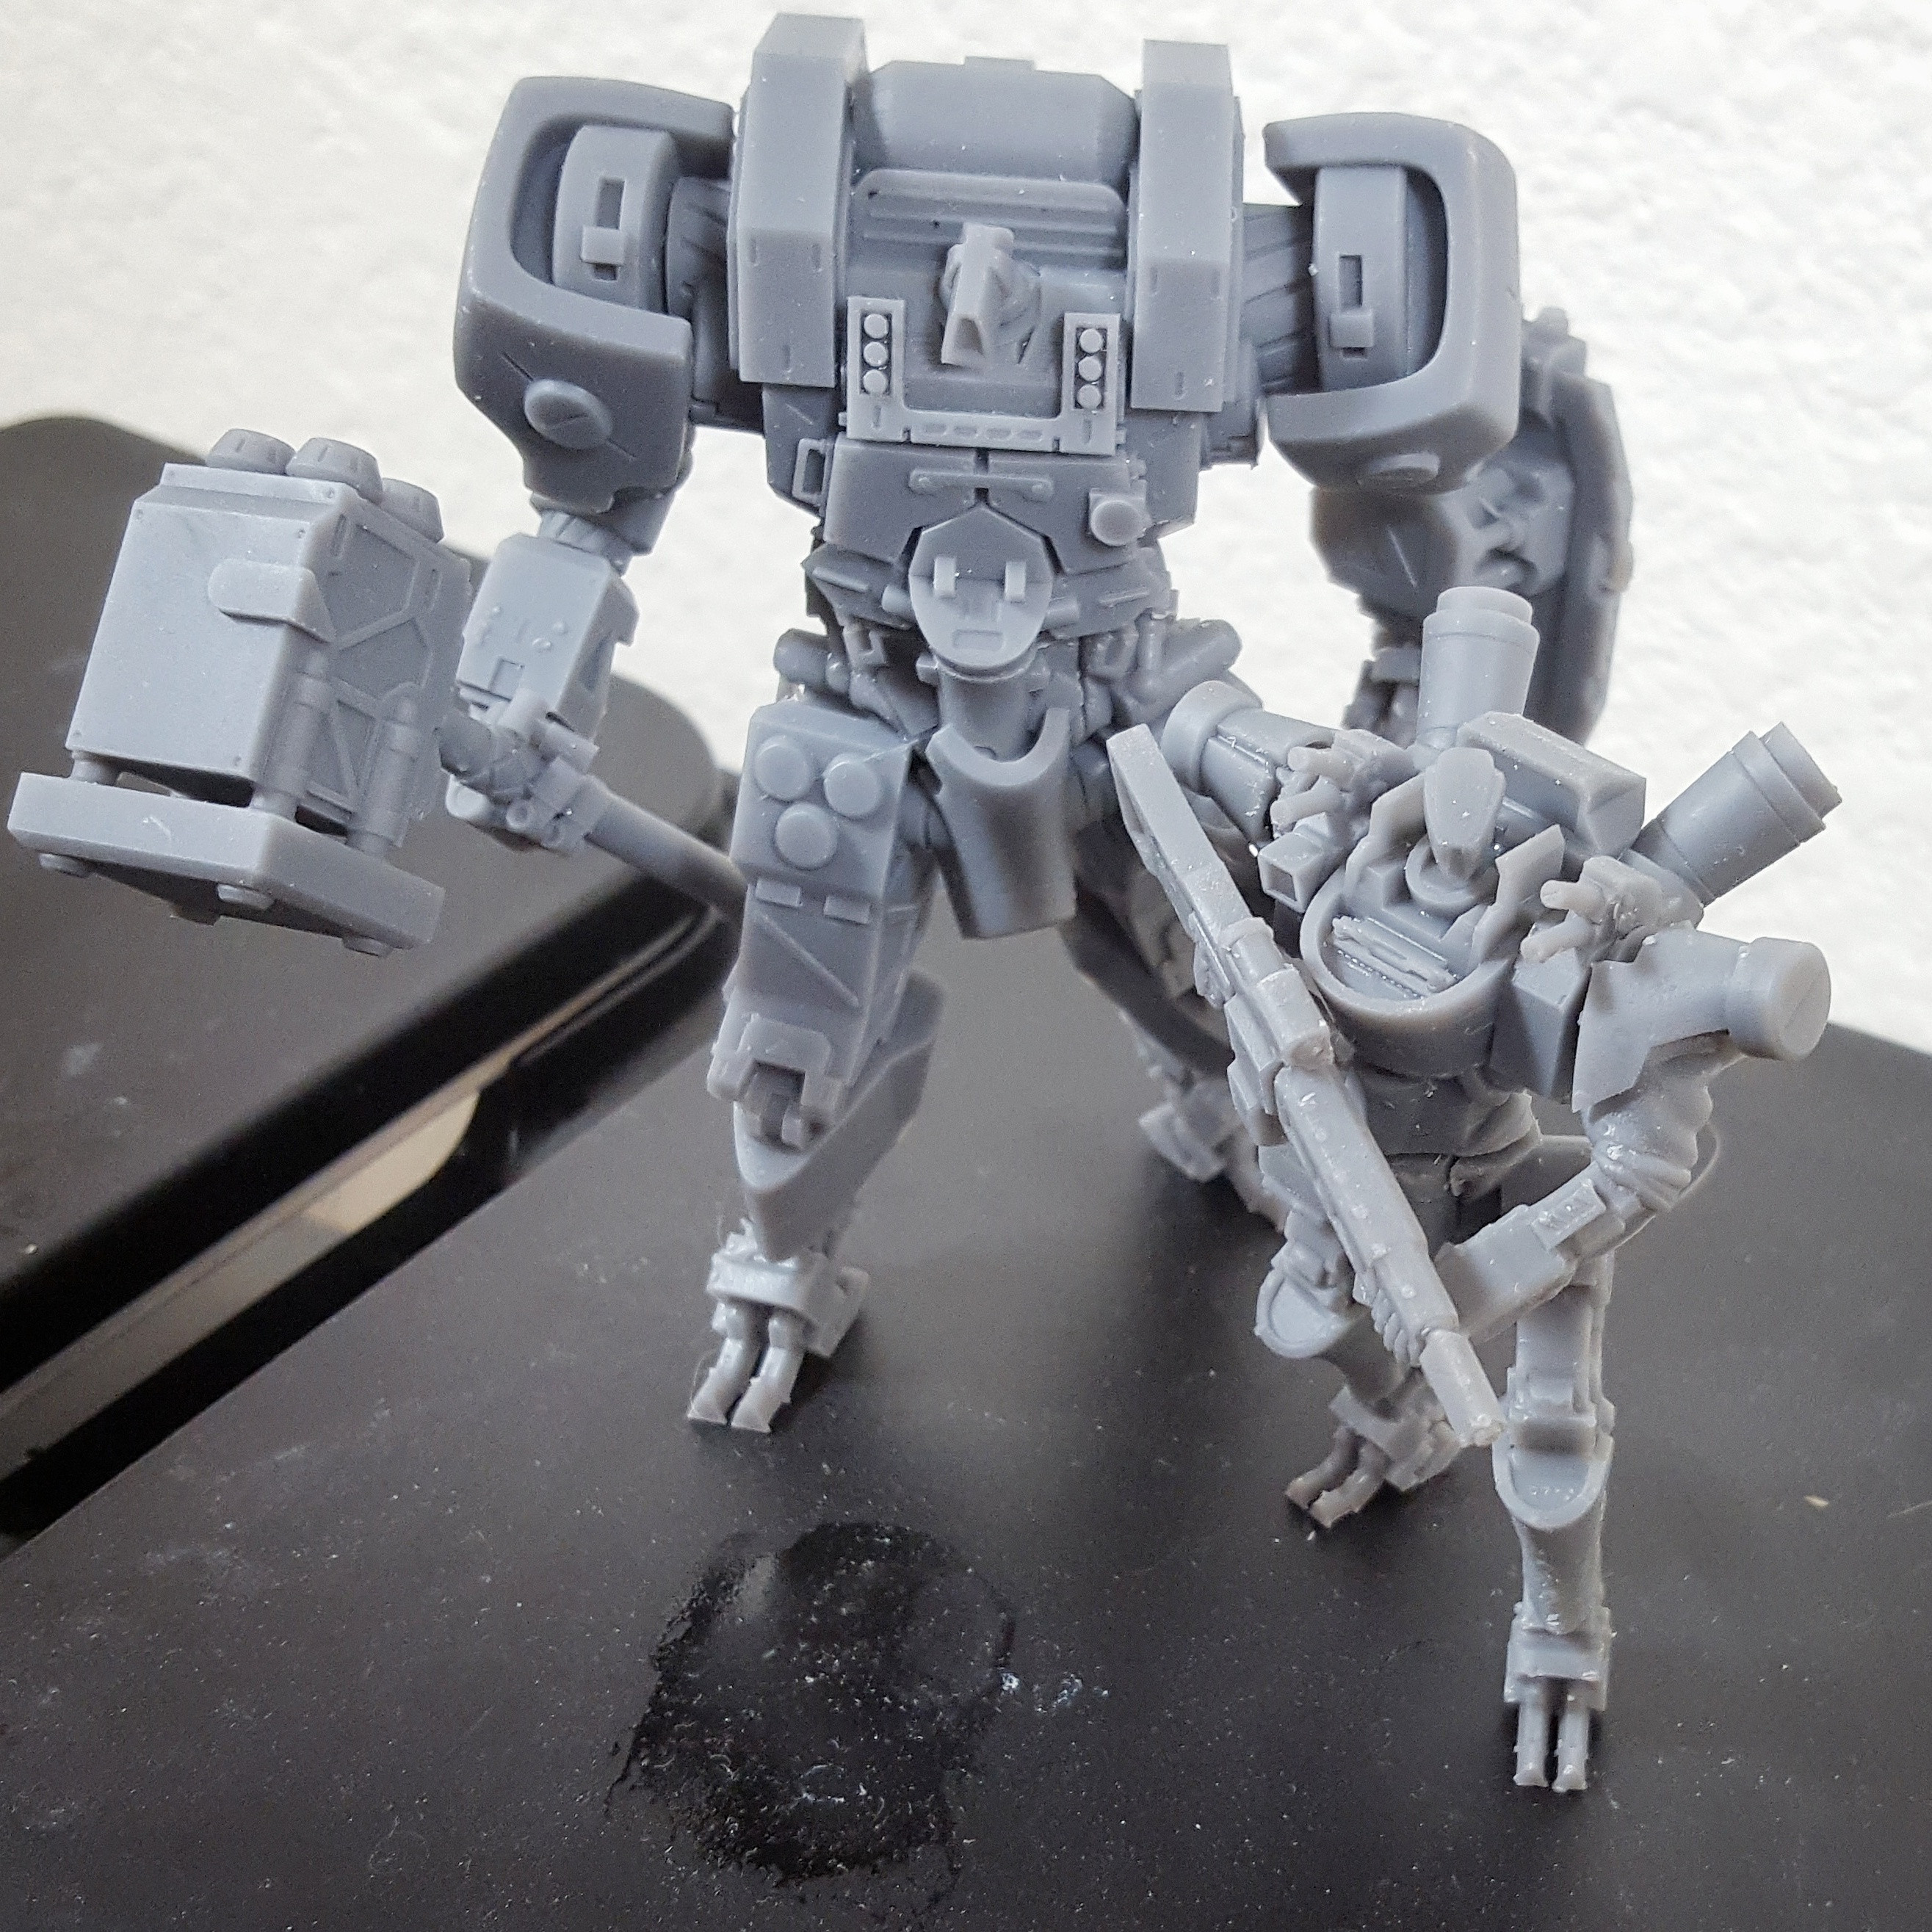 Example print next to the hammer guard